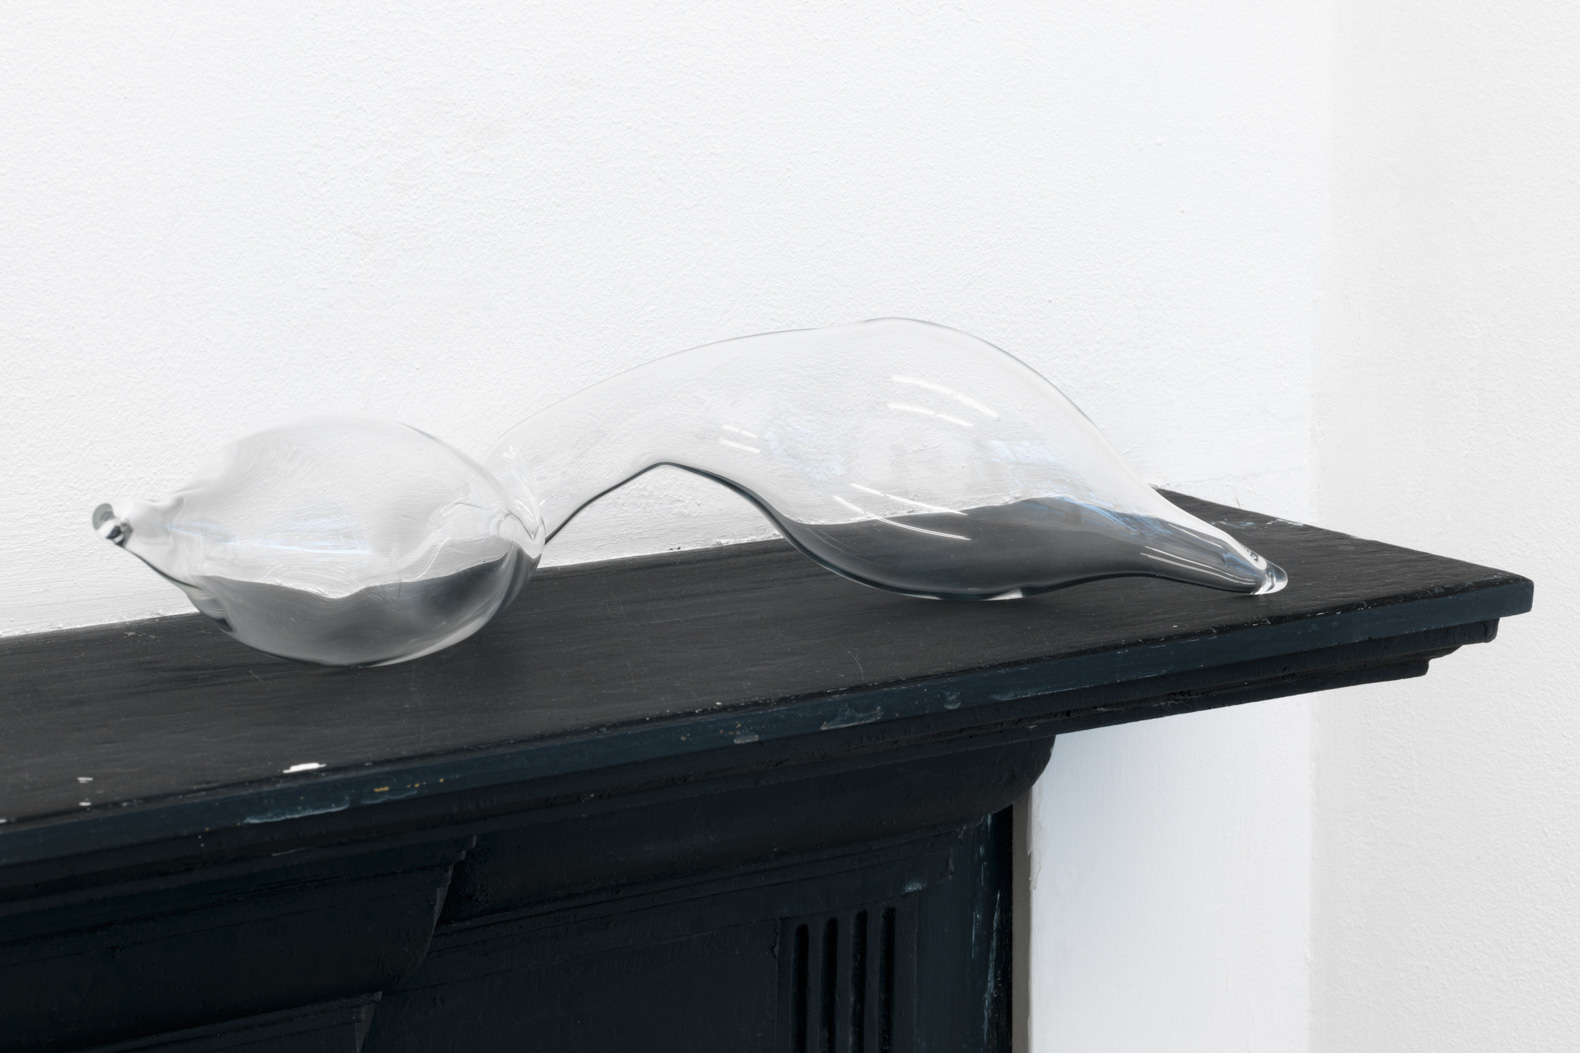 Ilona Sagar, 'Haptic Skins of a Glass Eye', 2015, Tenderpixel.